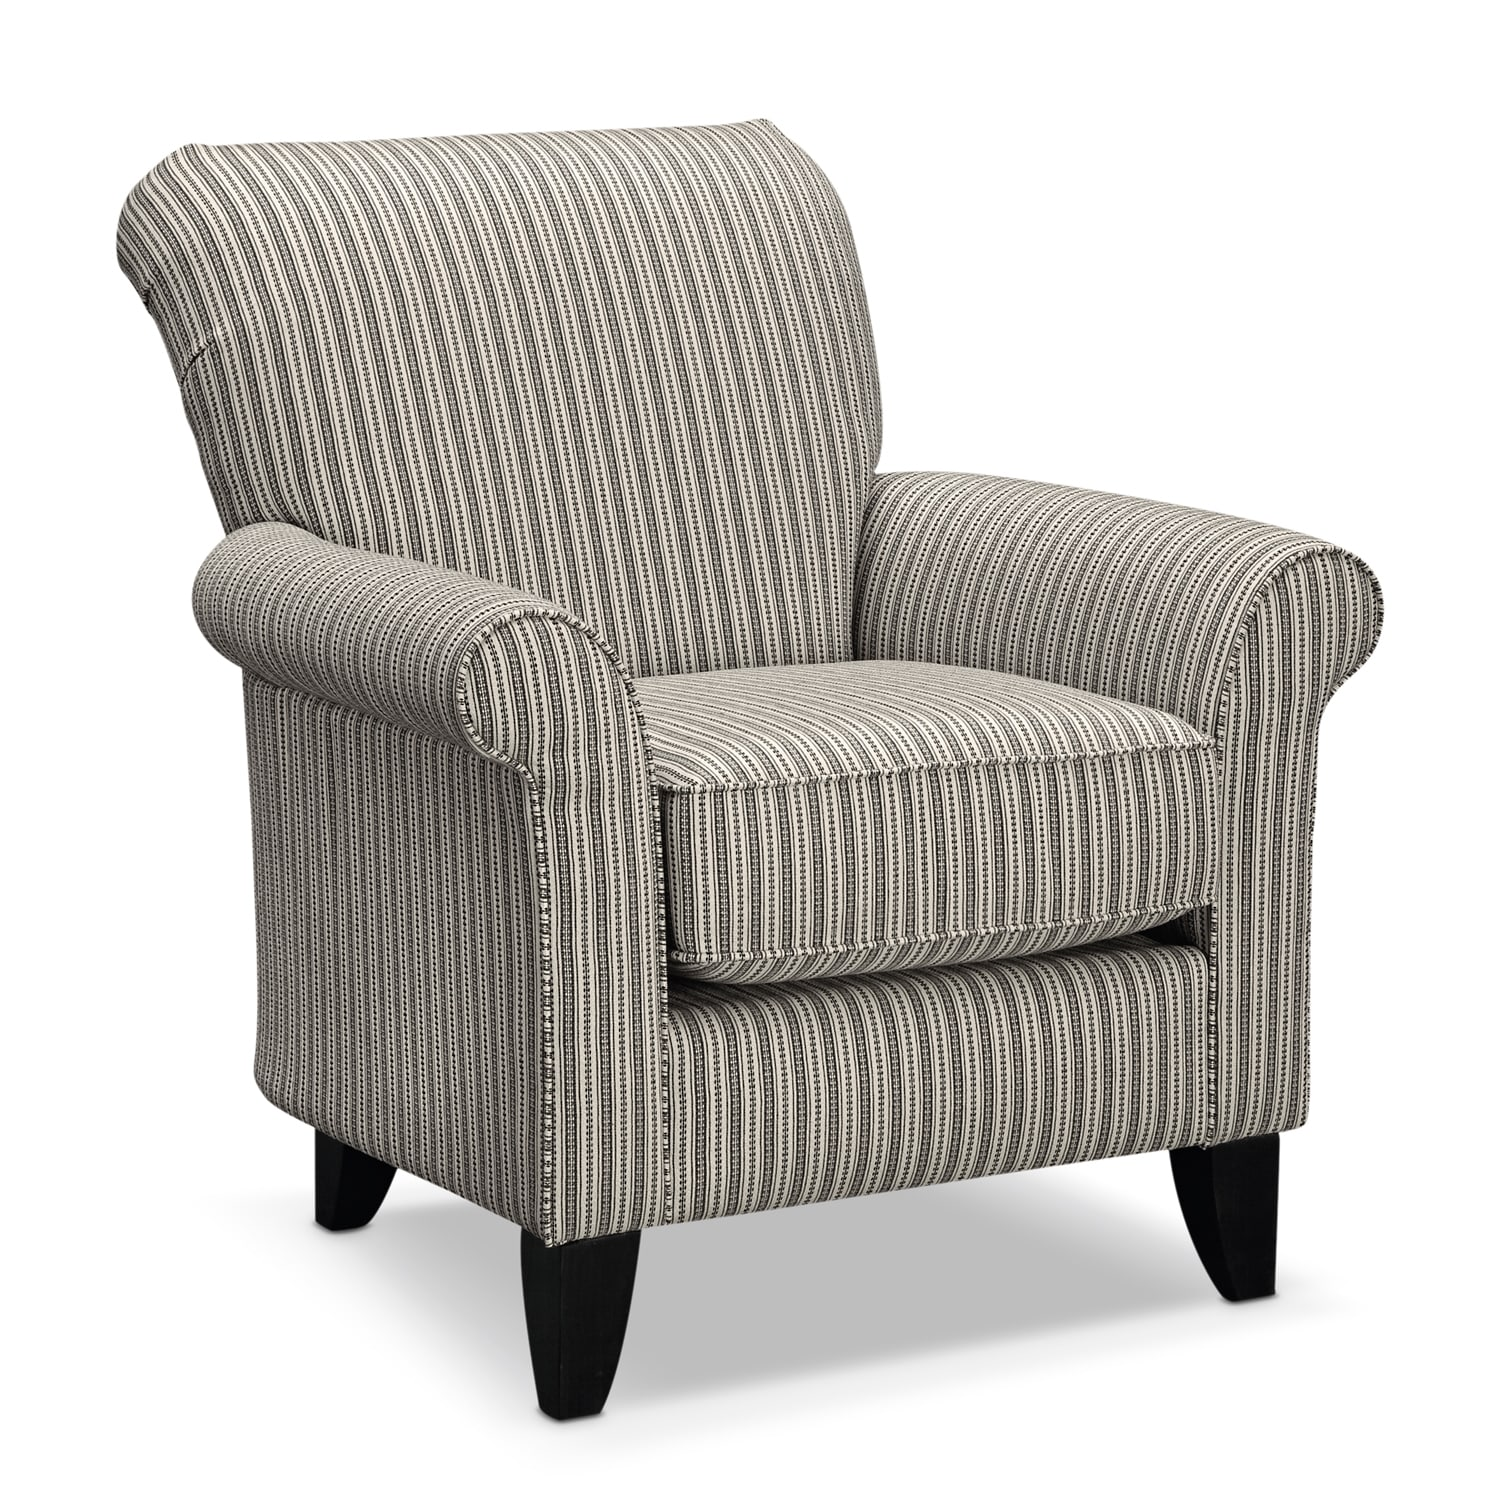 Colette Accent Chair - Gray Stripe  sc 1 st  Value City Furniture & Living Room Chairs u0026 Chaises | Value City Furniture | Value City ... islam-shia.org